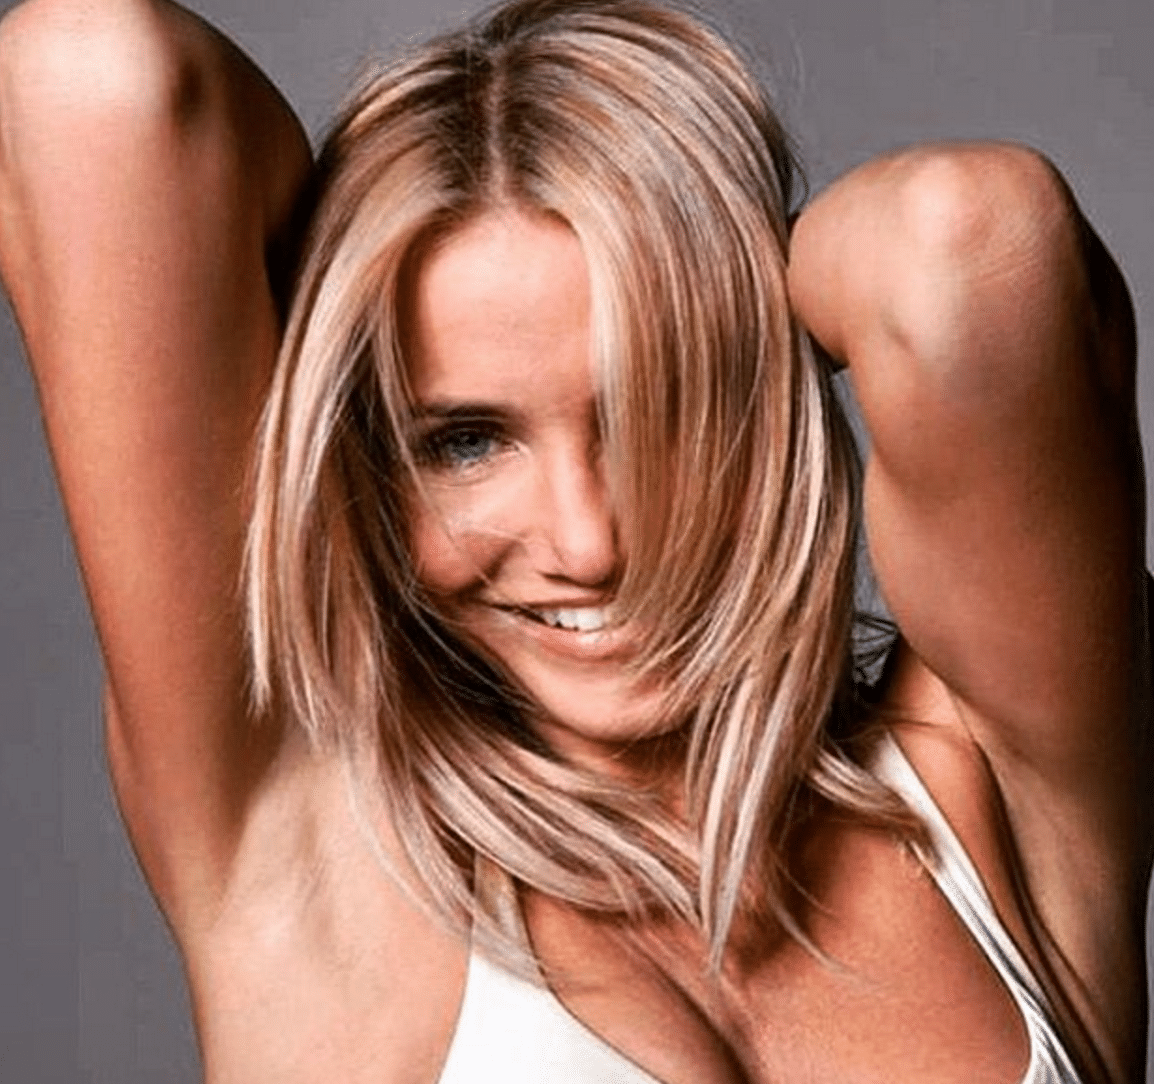 Cameron Diaz Female Chest Workout